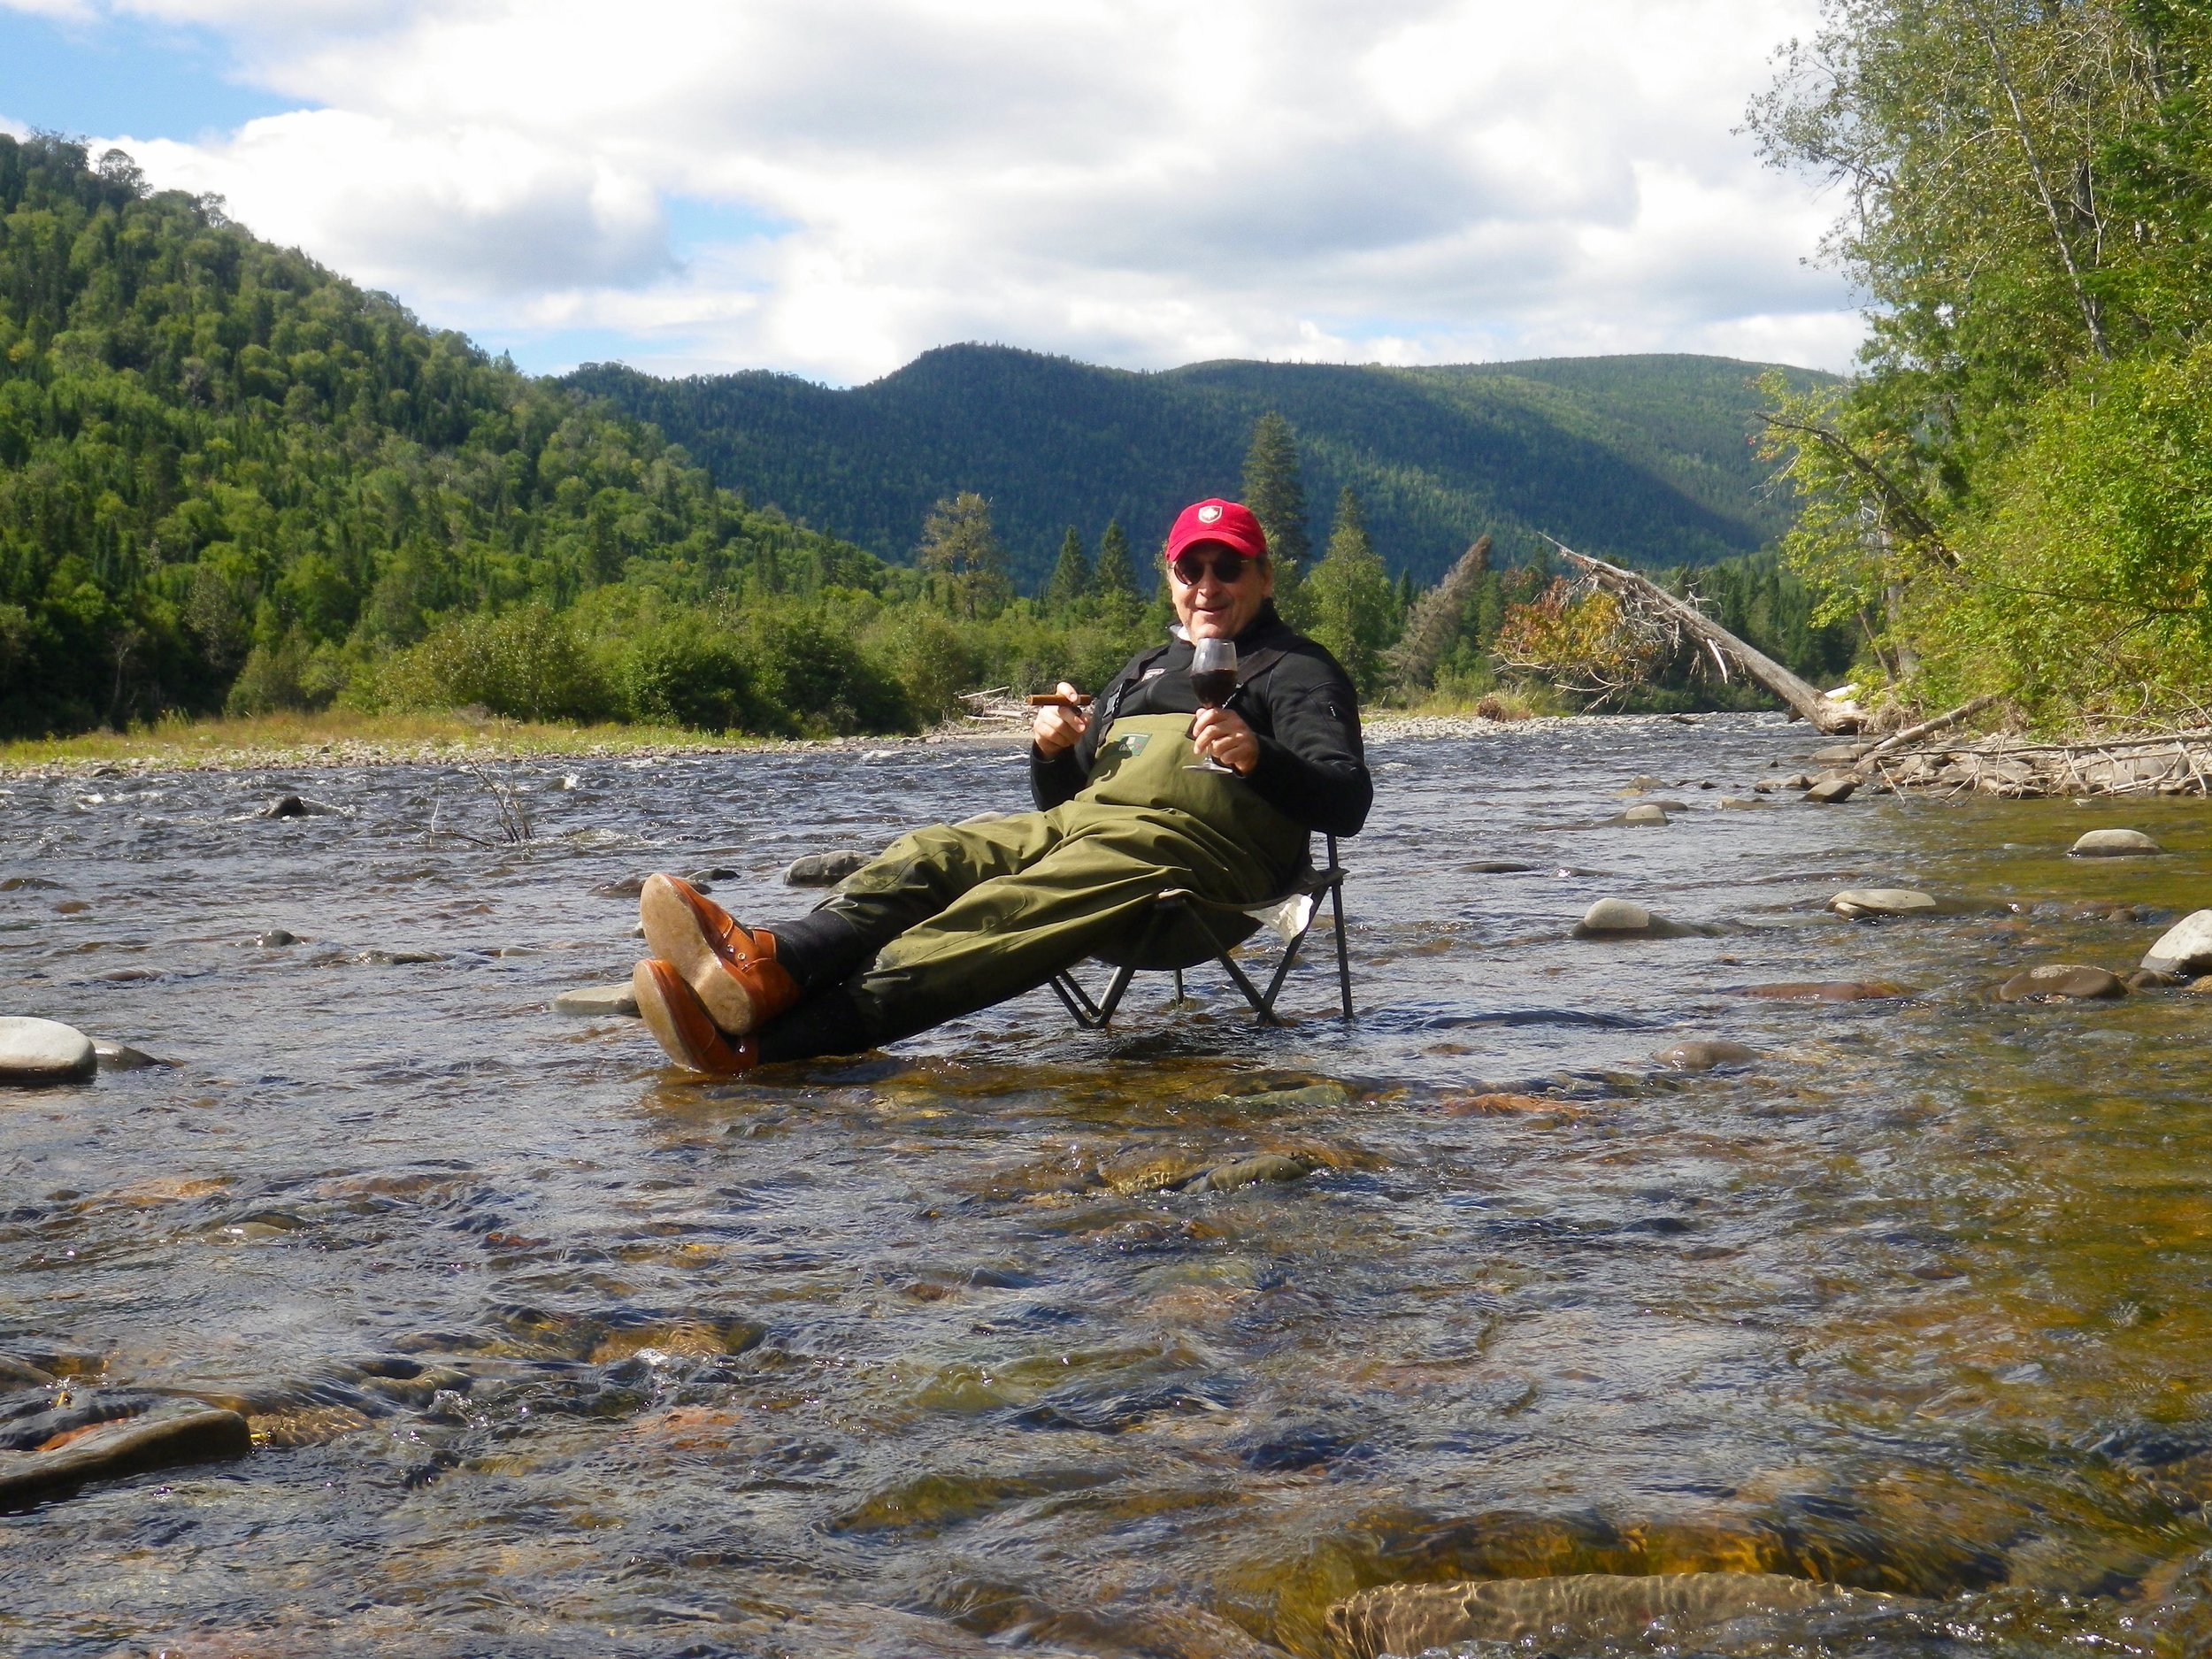 Now this is how to relax! Martin Cauchon enjoying his day on the Grand Cascapedia!